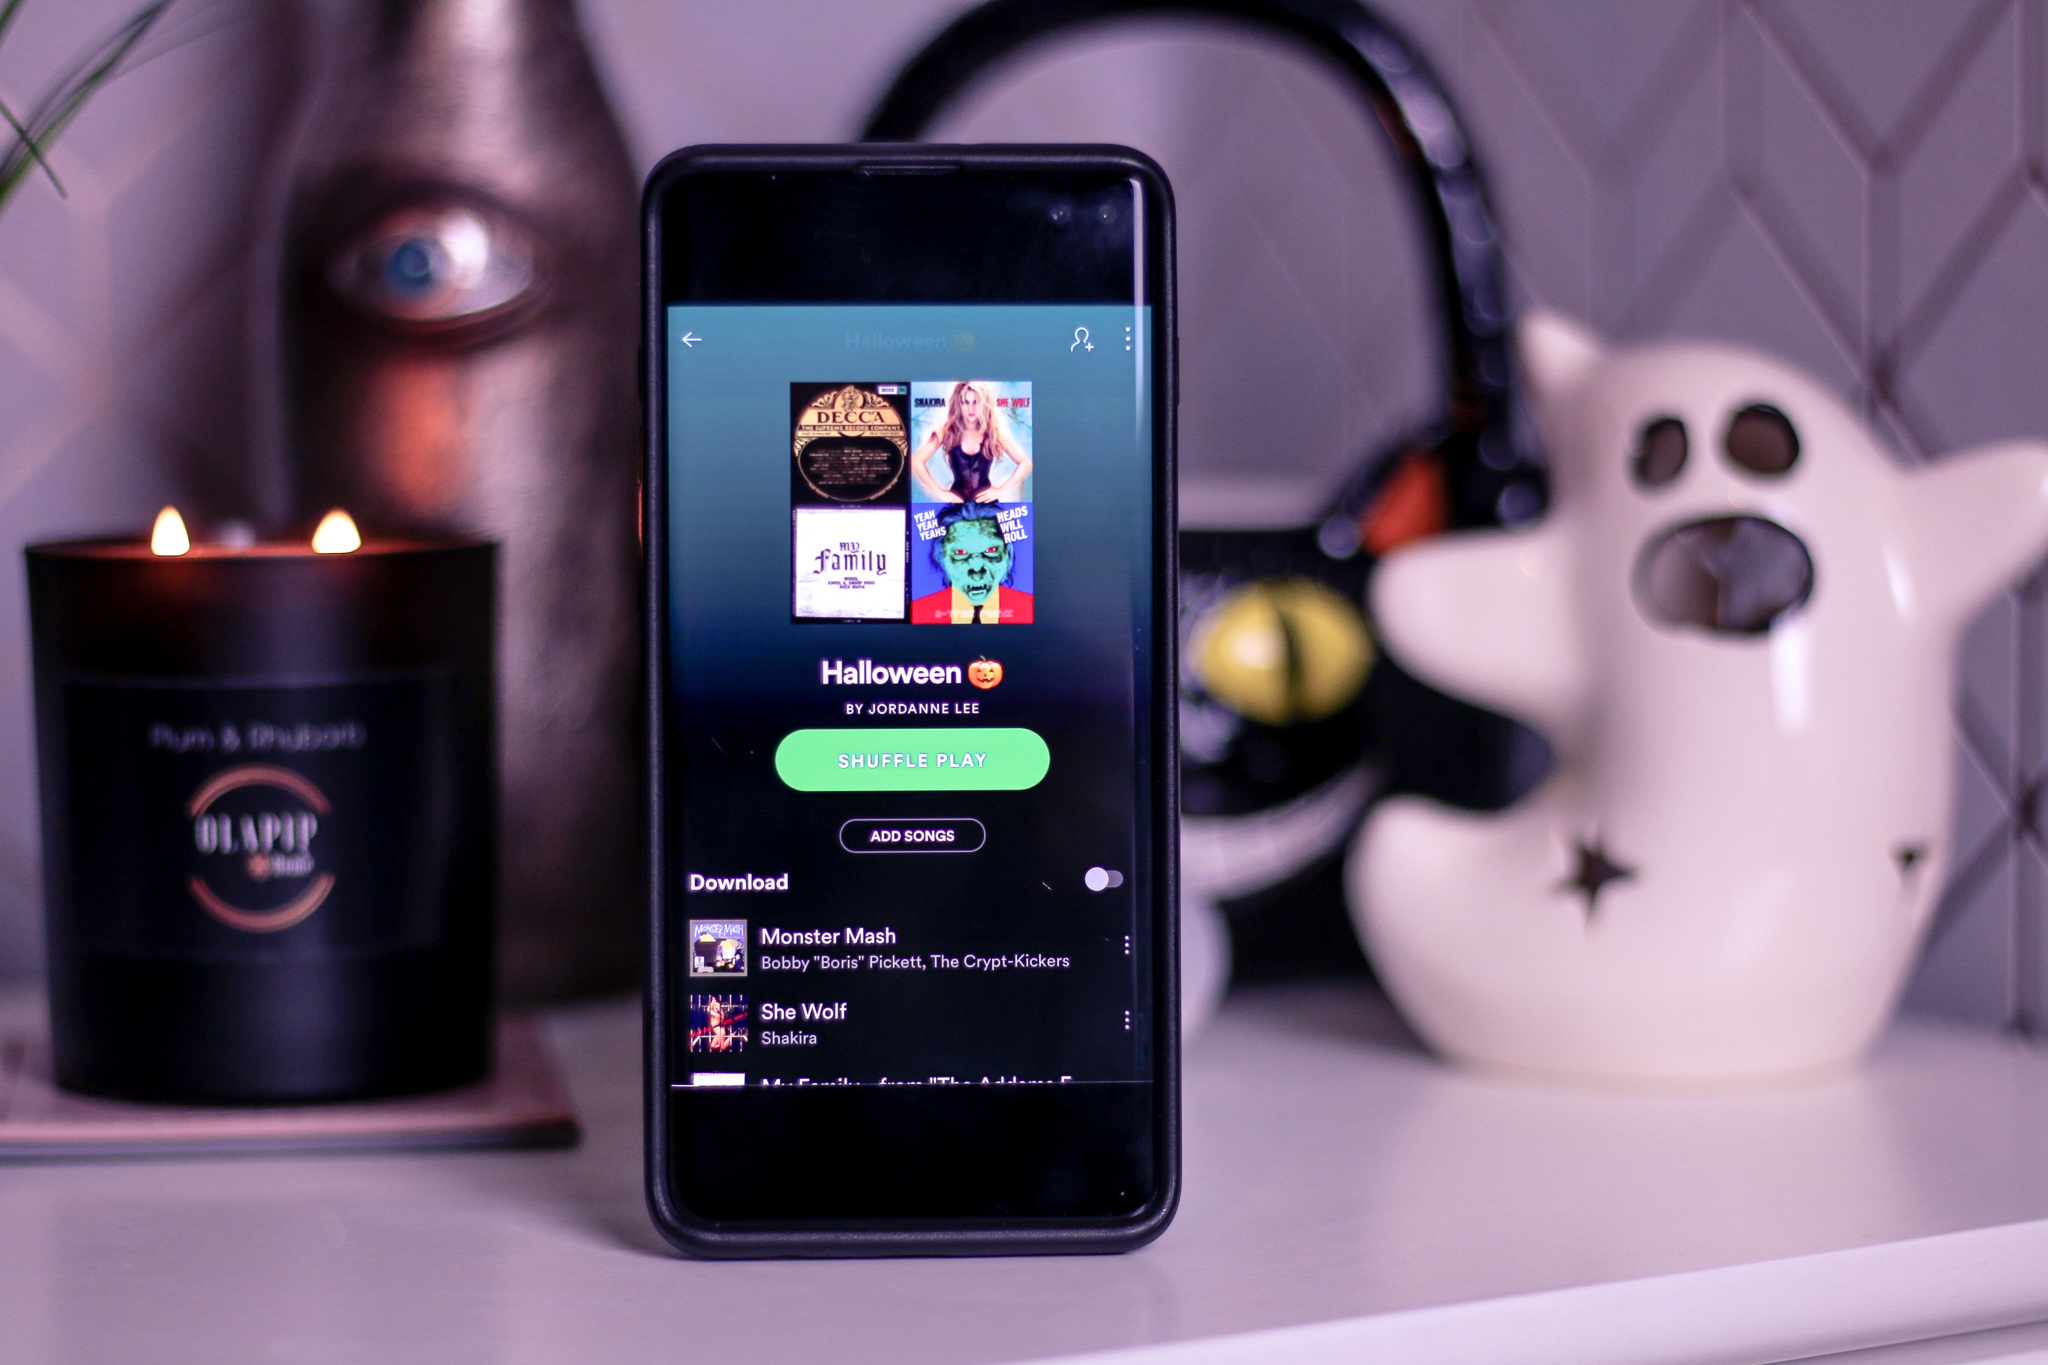 Close up of a Samsung s10+ with a Halloween Spotify playlist showing